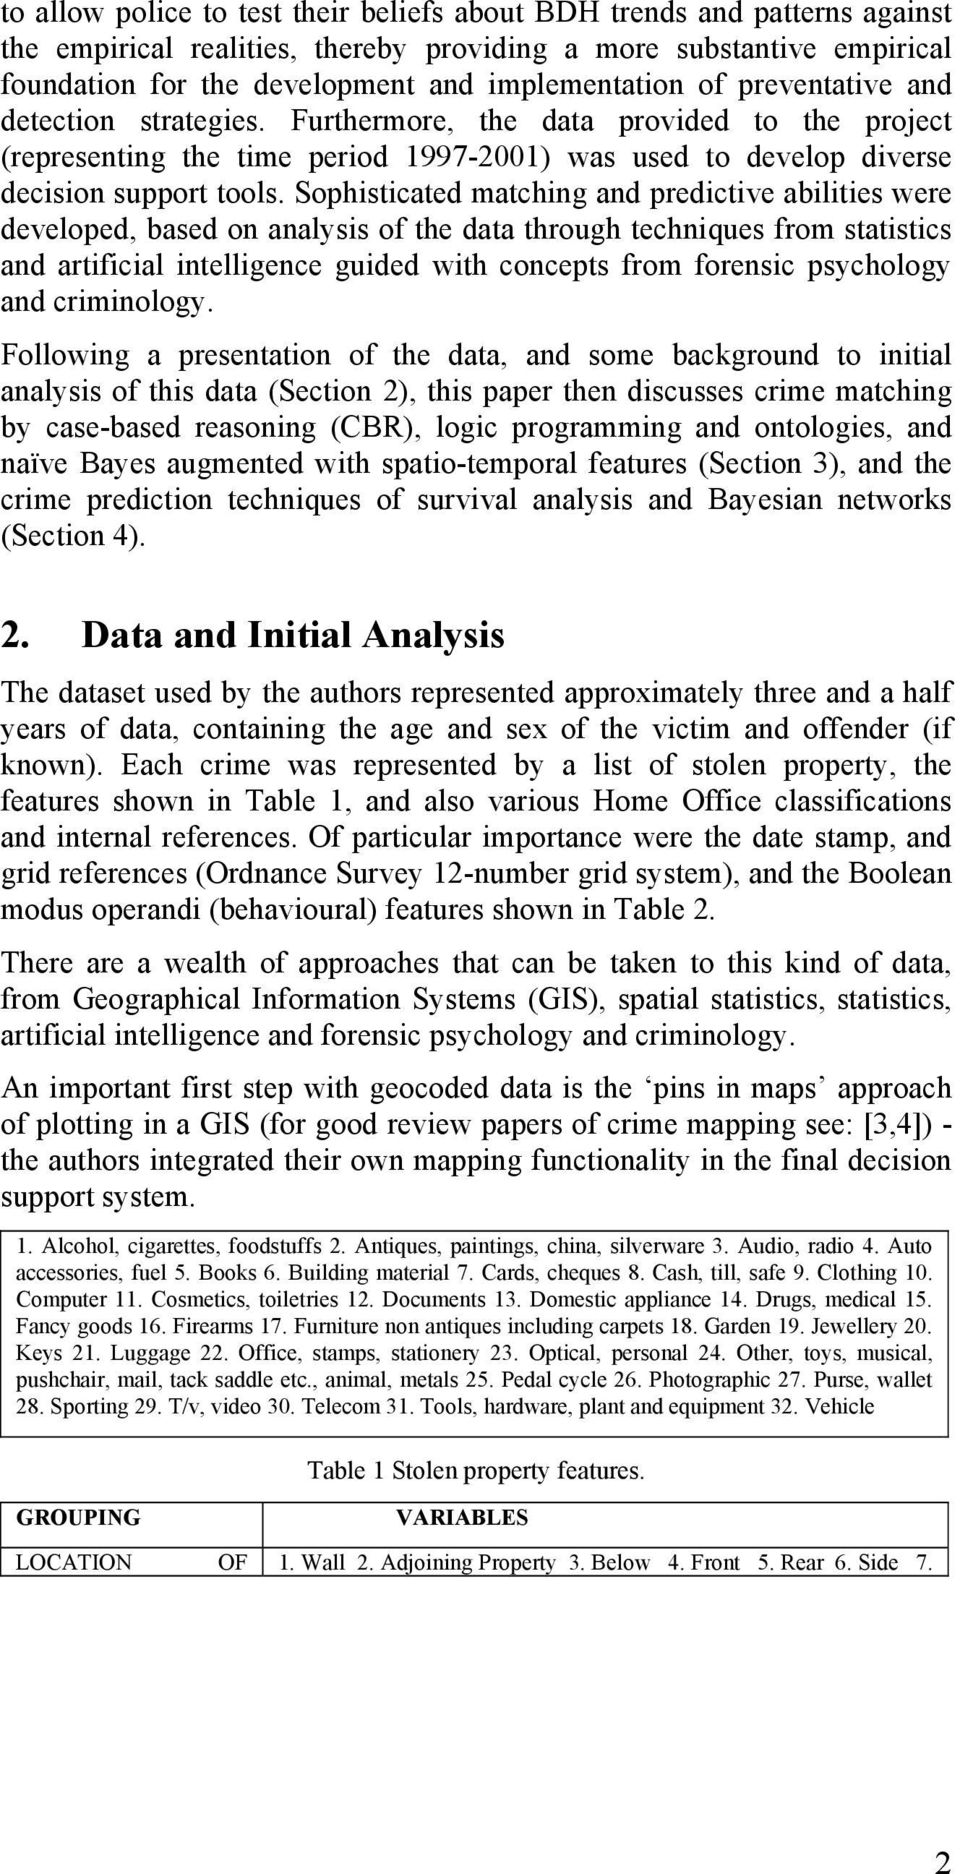 Sophisticated matching and predictive abilities were developed, based on analysis of the data through techniques from statistics and artificial intelligence guided with concepts from forensic